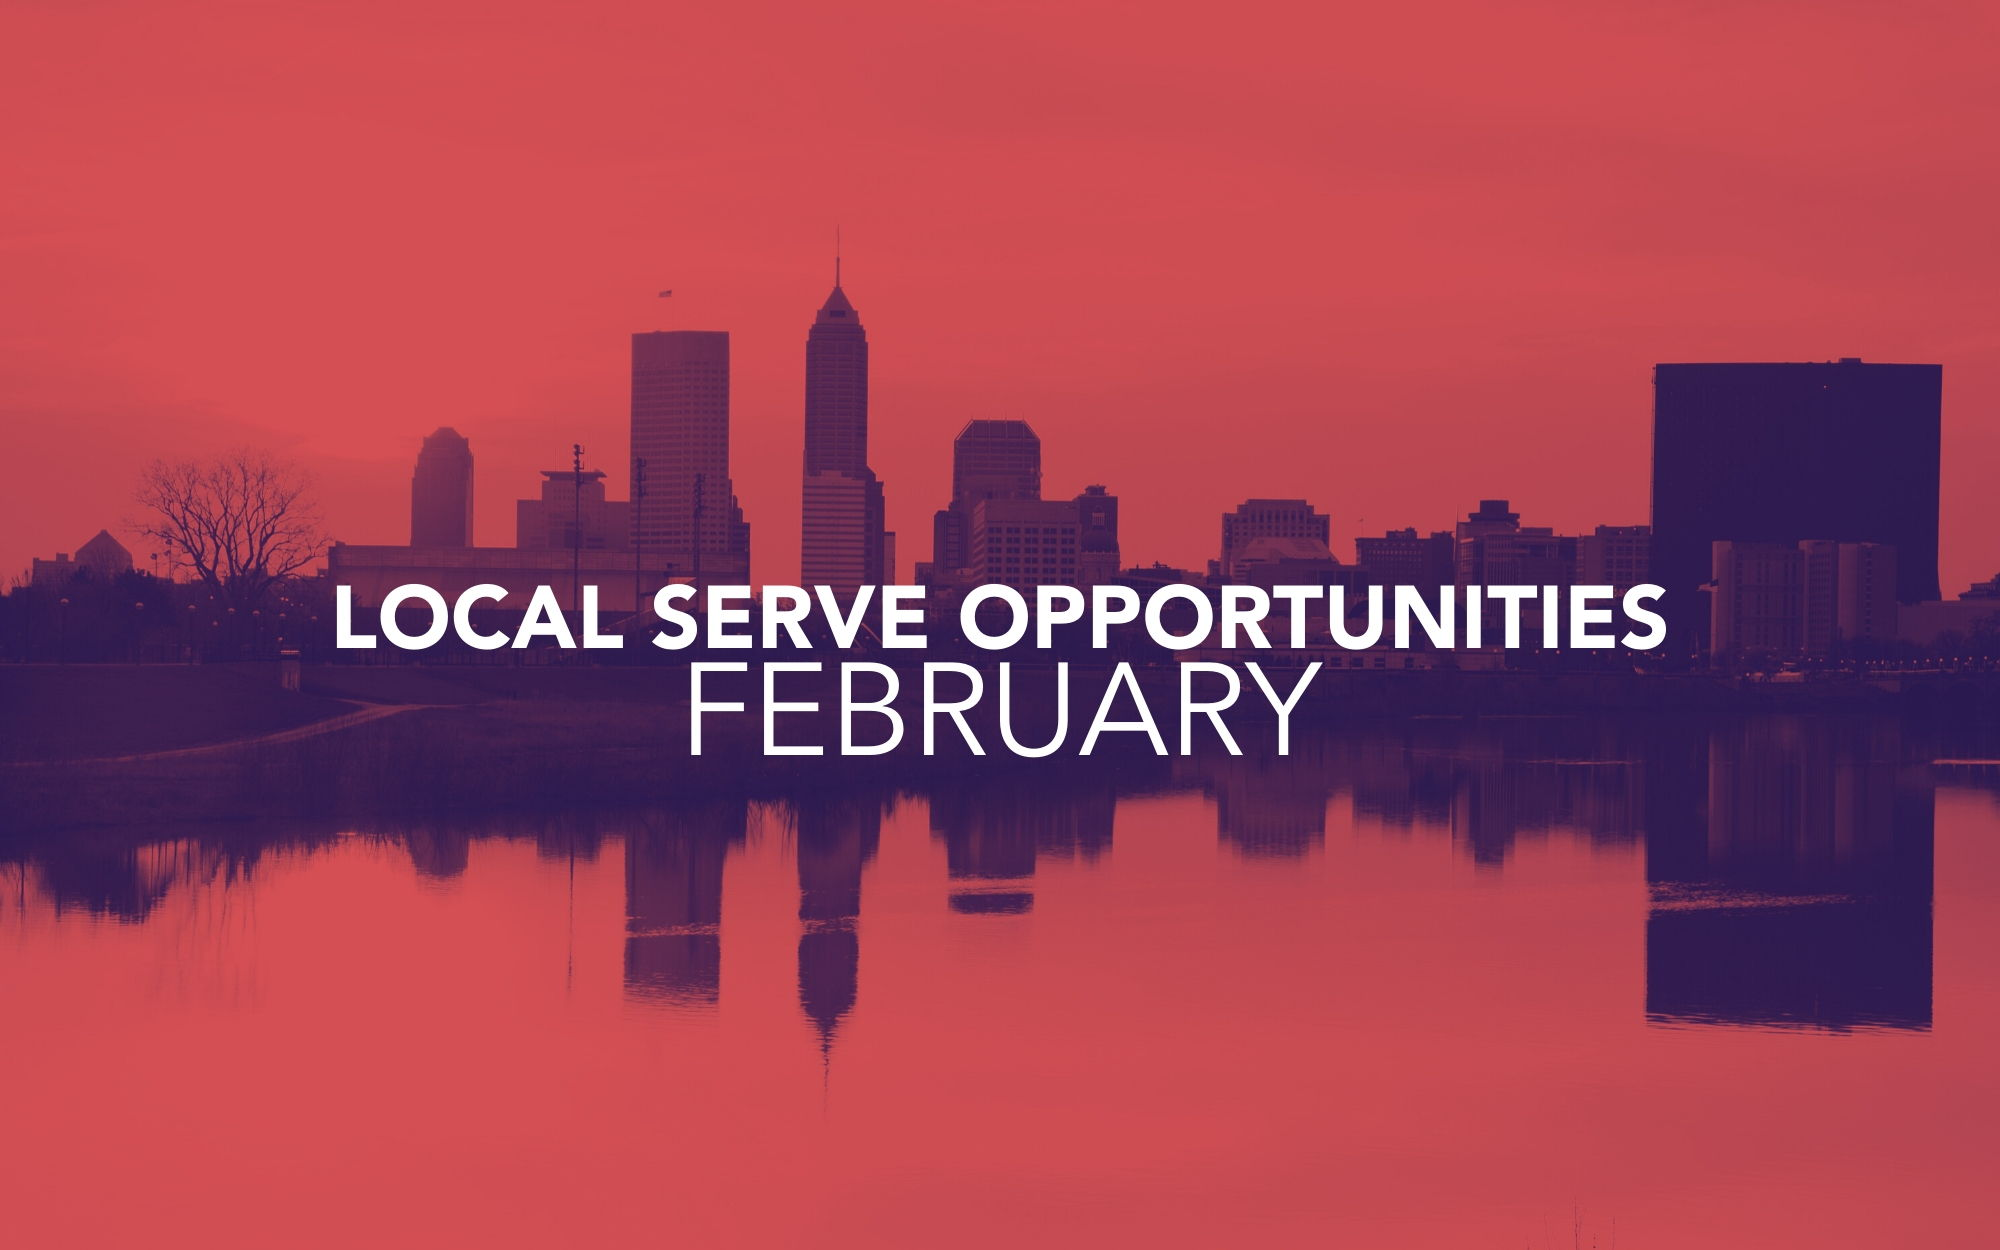 Image for February Local Serve Opportunities